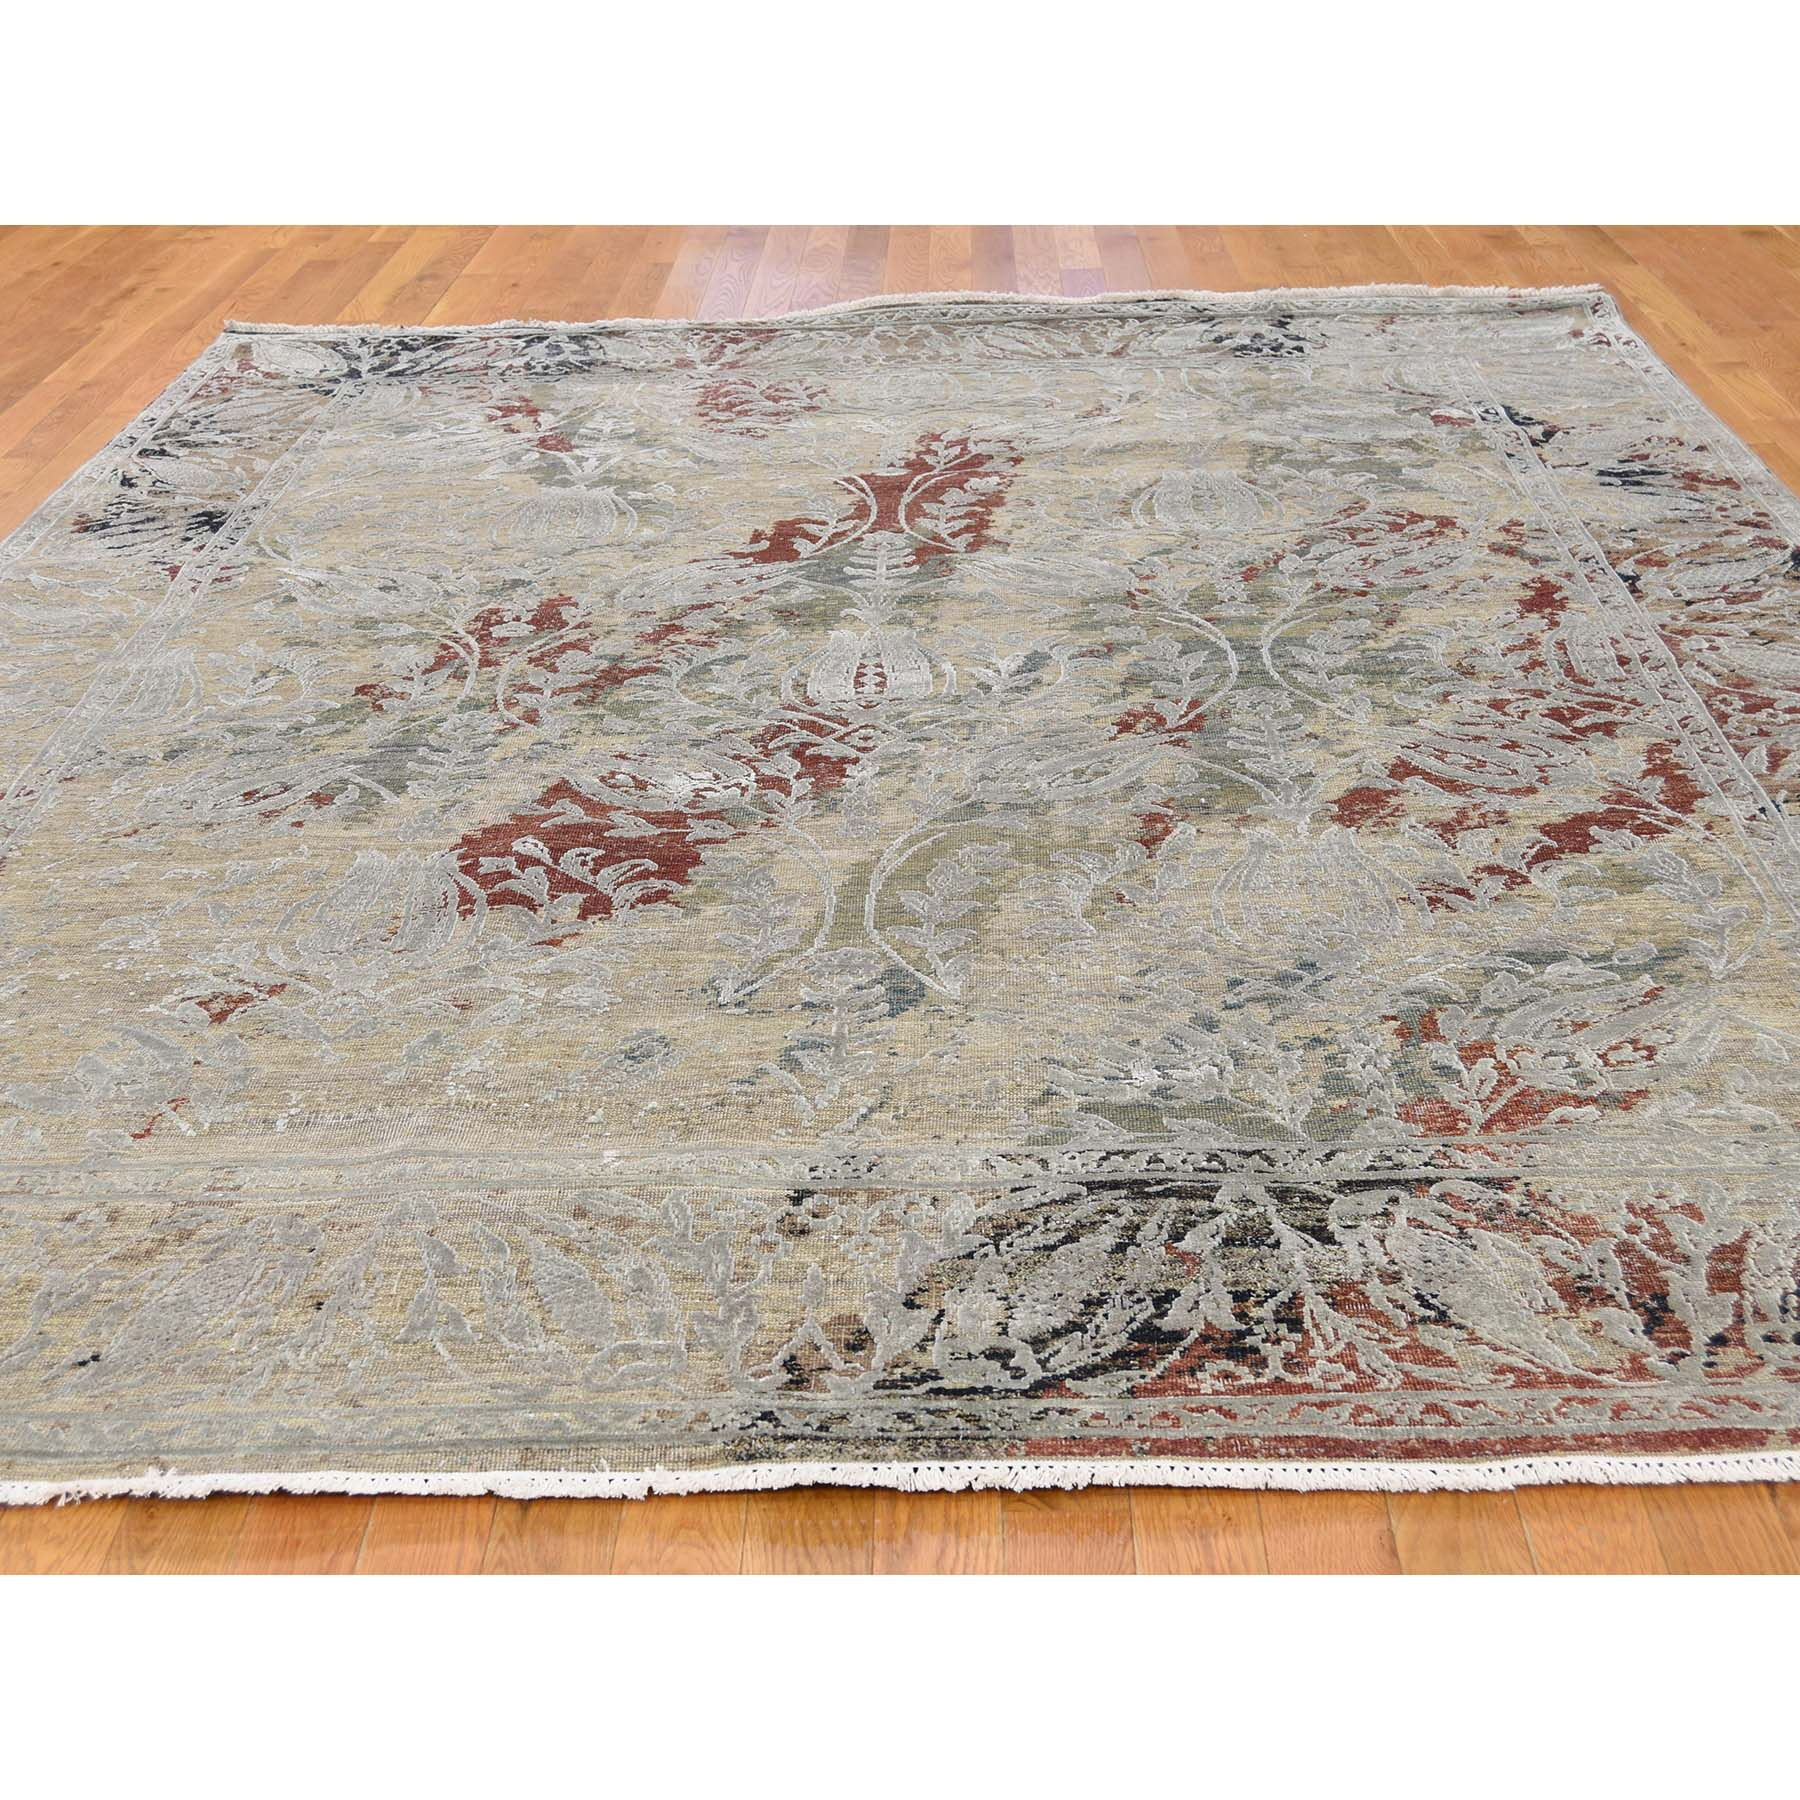 8-1--x10-1- Silk With Oxidized Wool Broken Tulip Design Hand-Knotted Oriental Rug